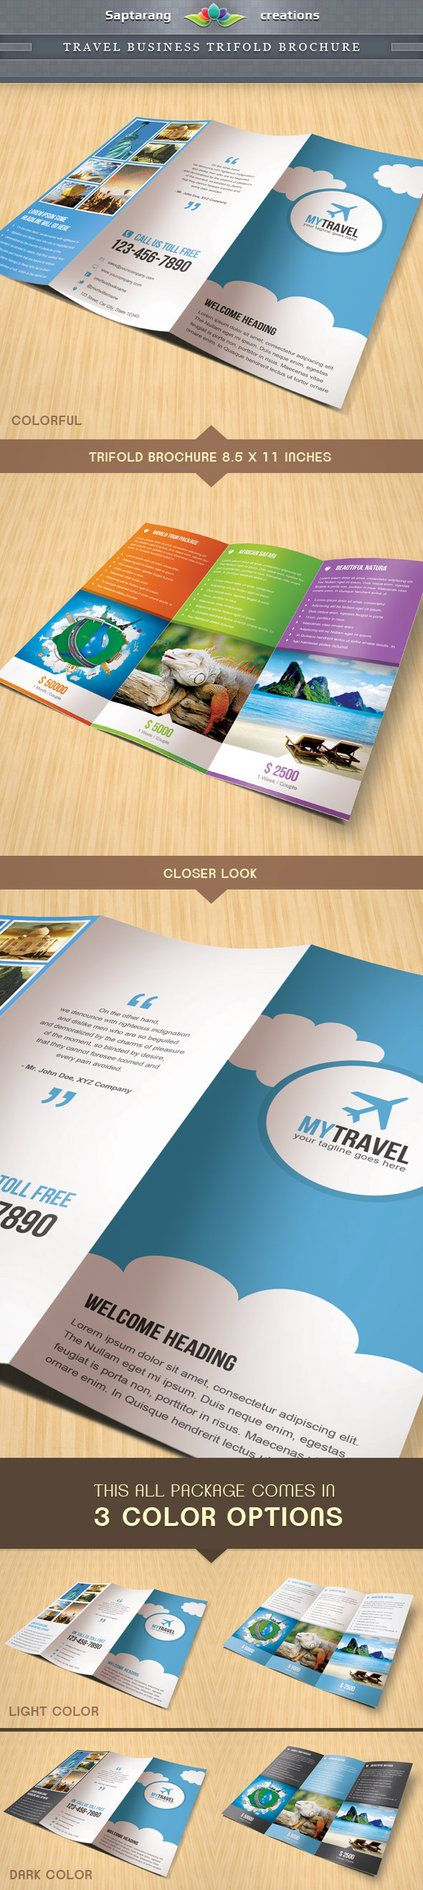 Travel Business Trifold Brochure by ~Saptarang on deviantART